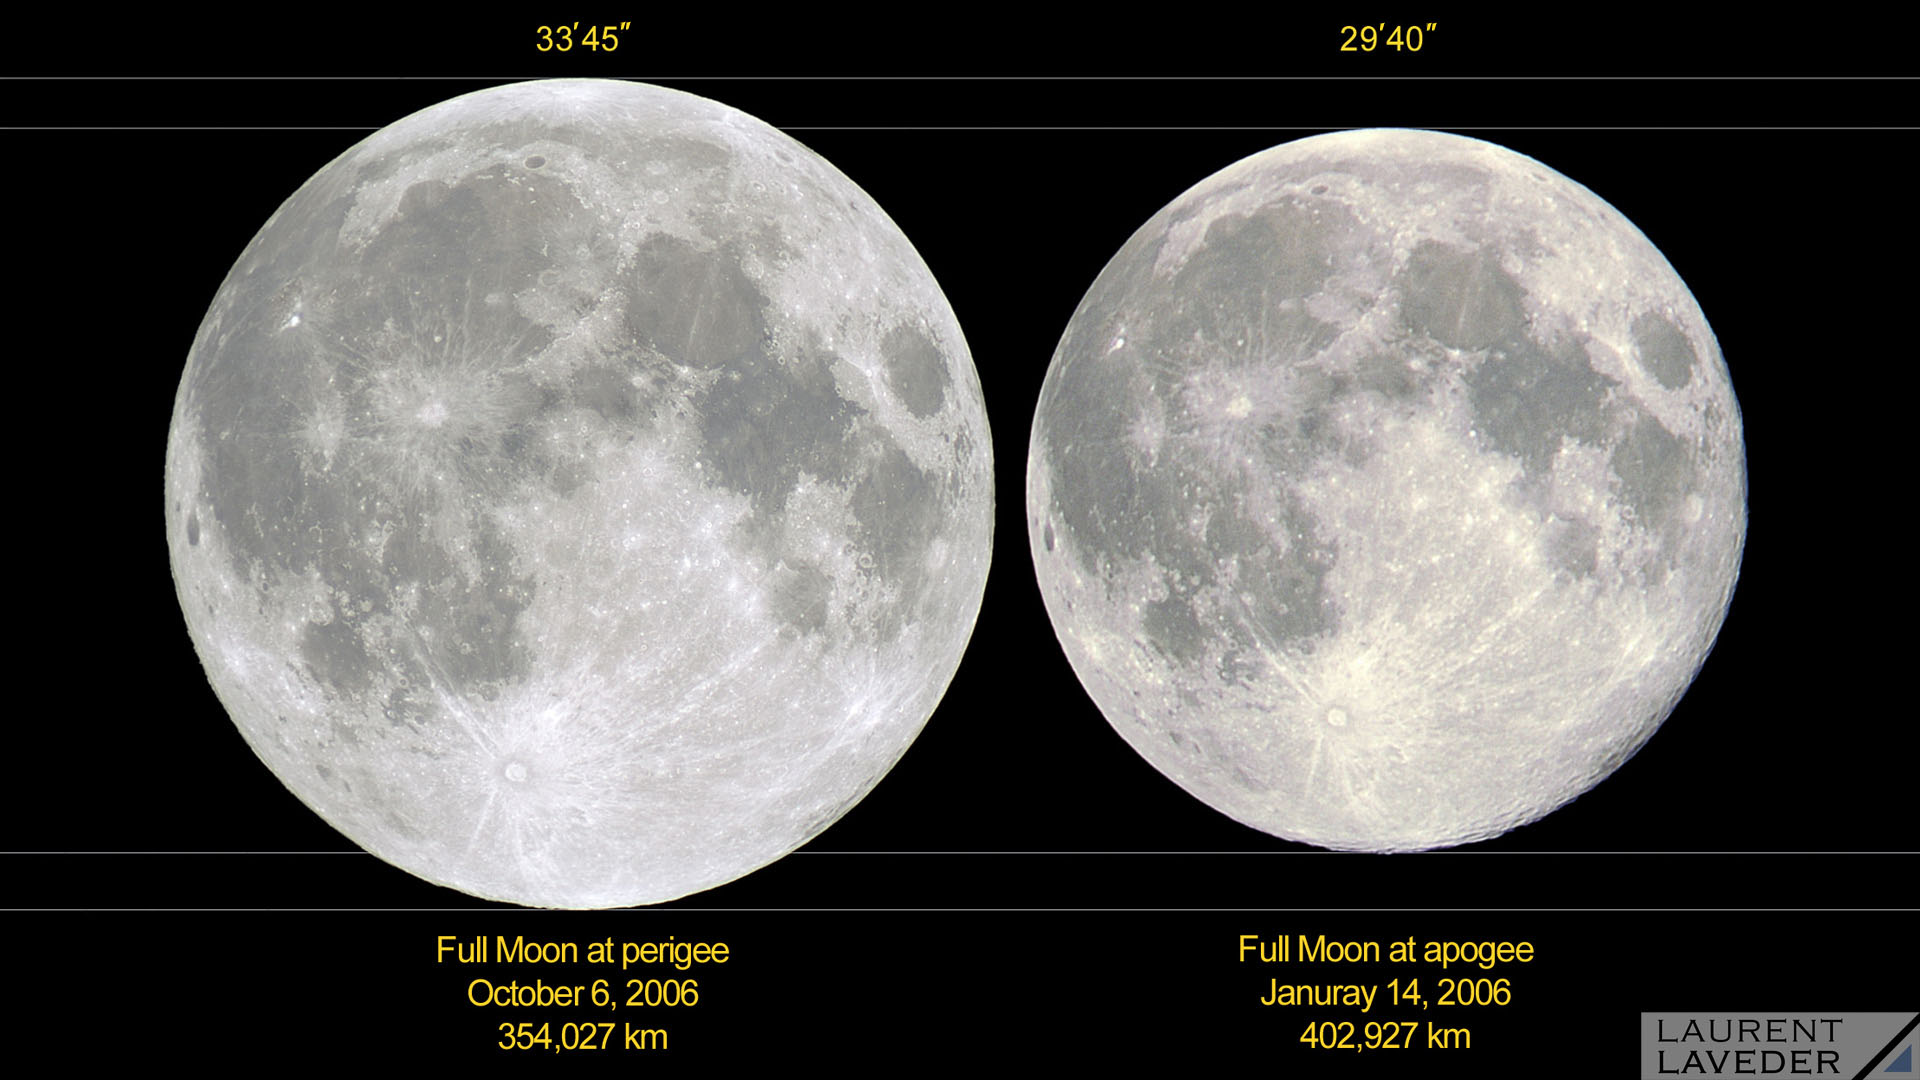 The full Moon seen at Perigee (left) and Apogee (right). Credit: SkyandTelescope.com